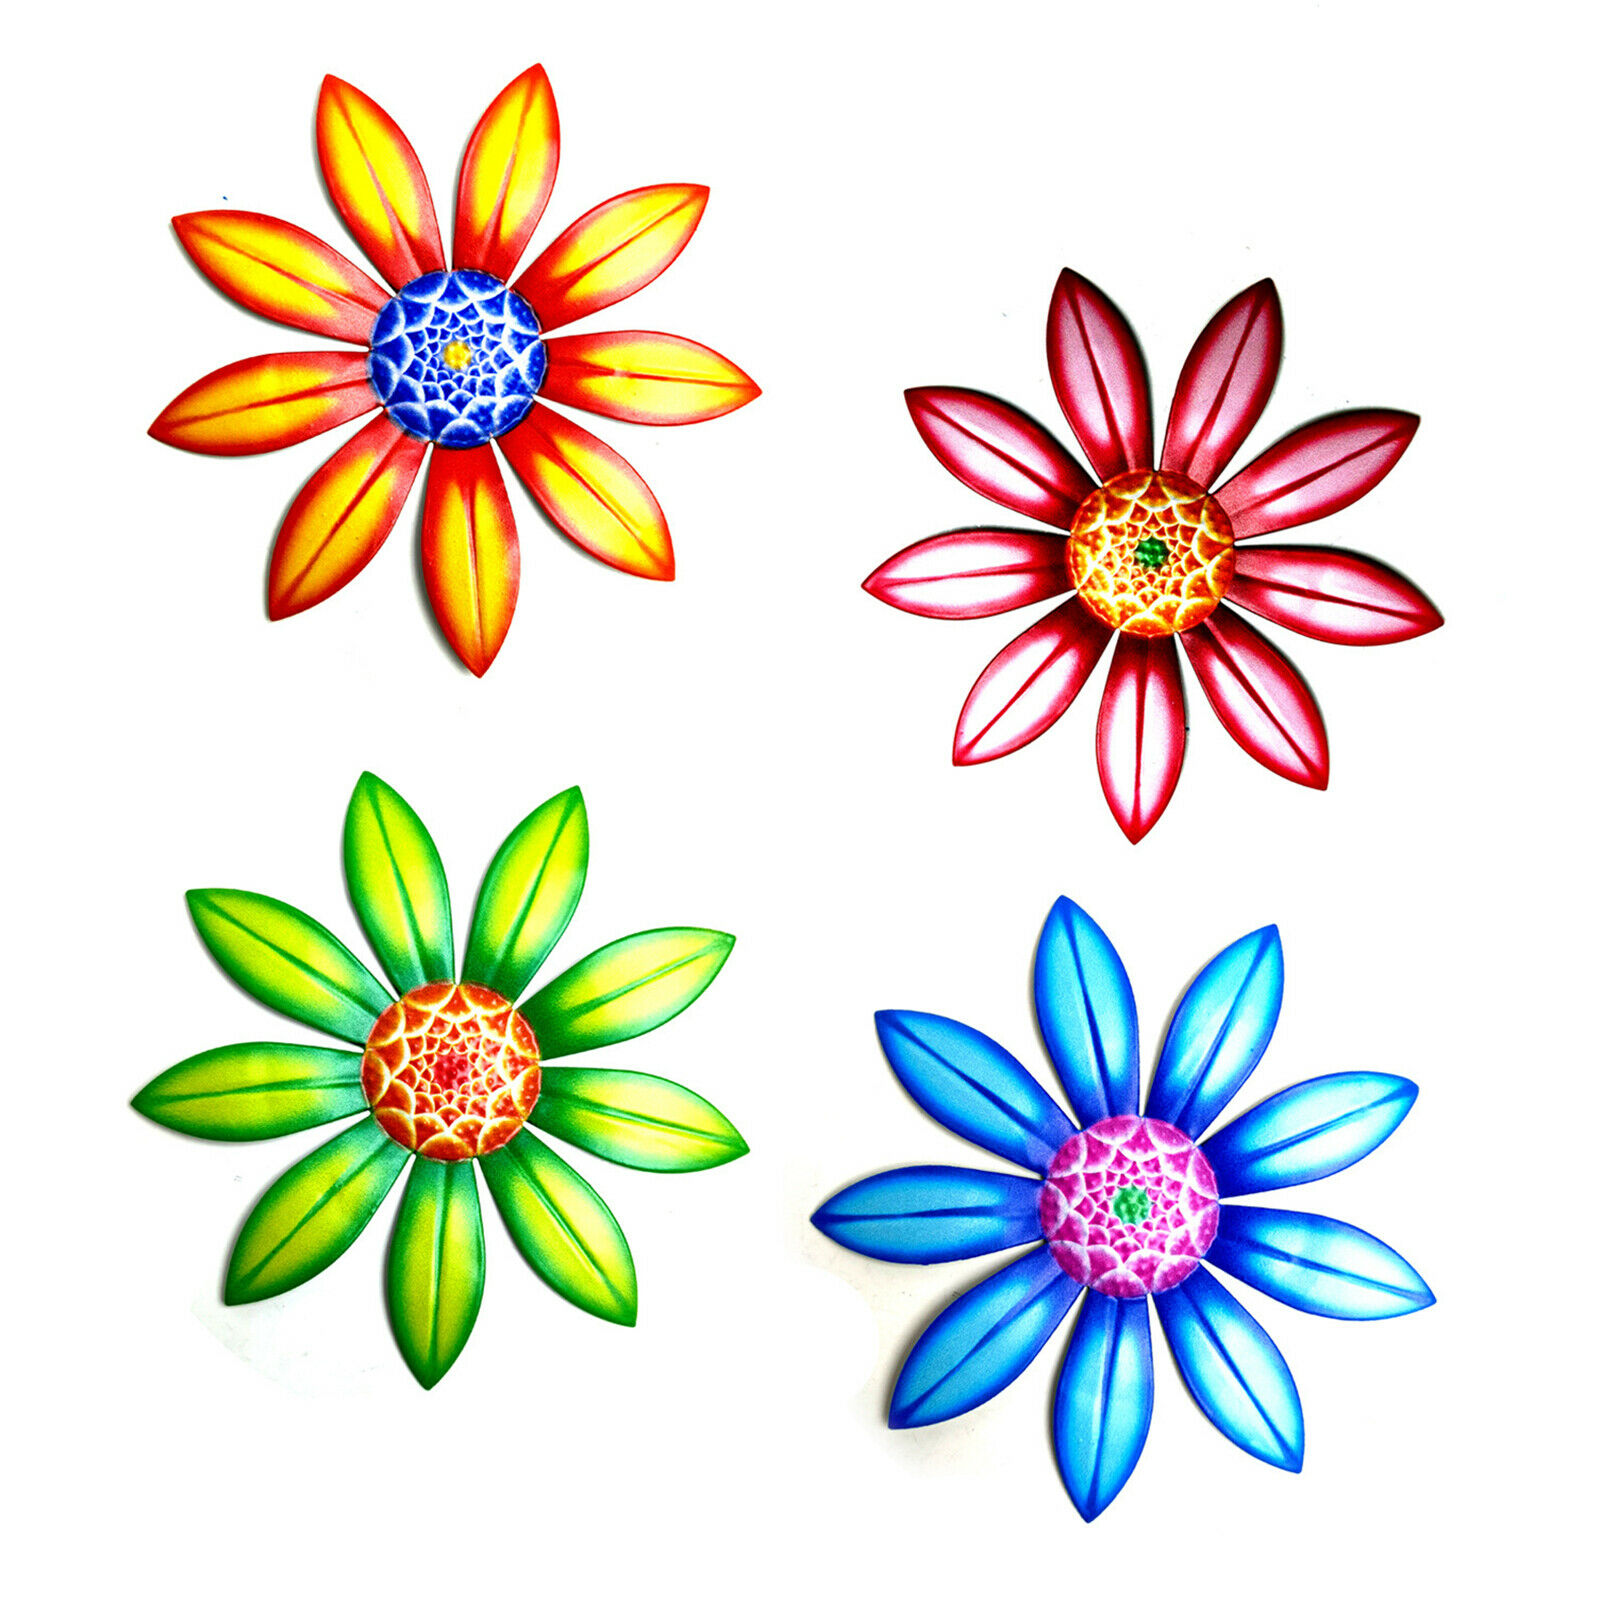 Garden Pinwheels Wall Decoration Non-toxic 17*17*3cm Wind Spinners Outdoor Metal